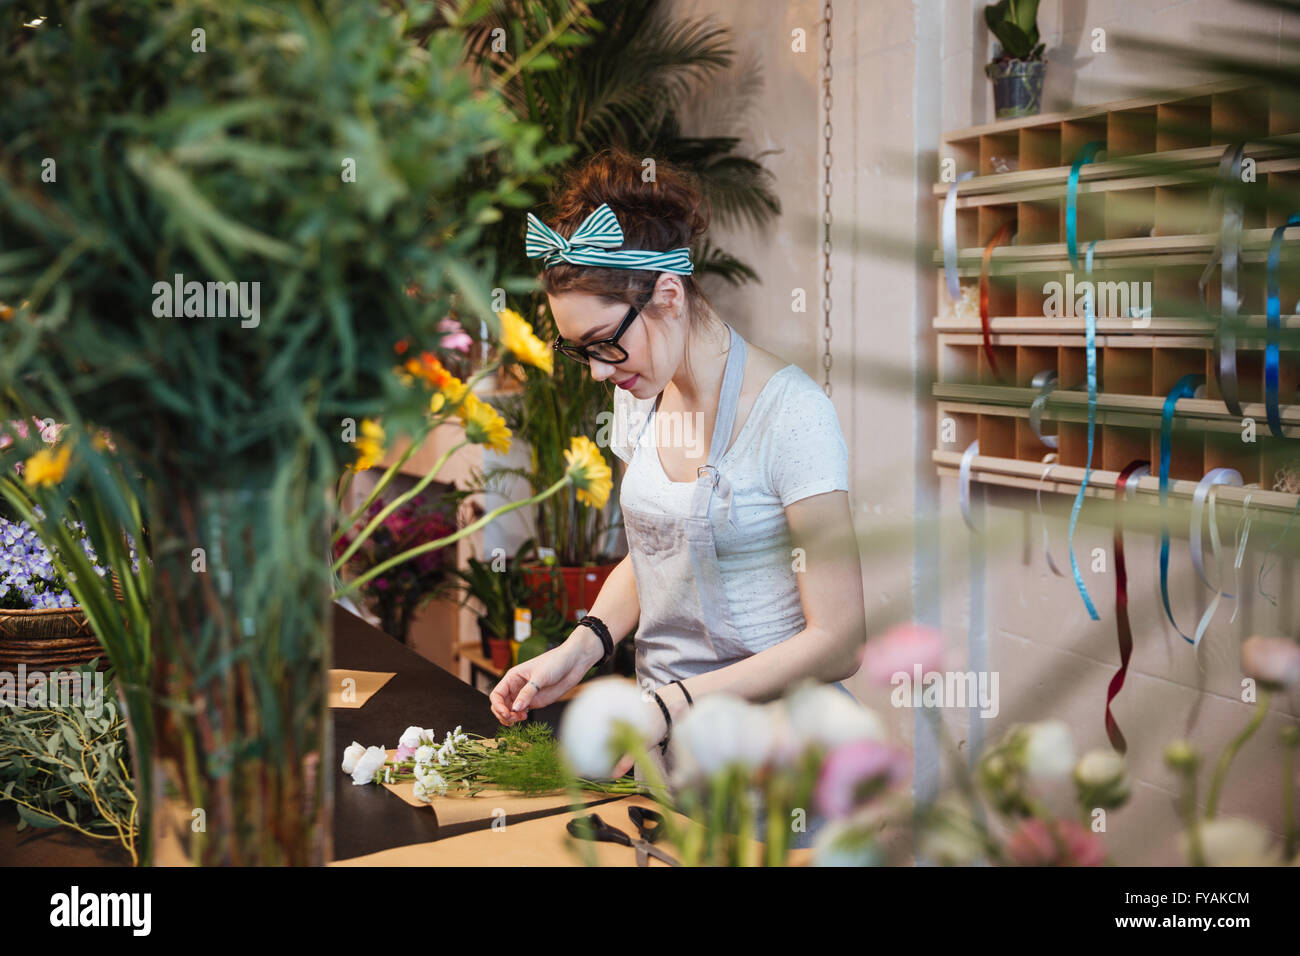 Beautiful young woman florist in apron and glasses making bouquet and working in flower shop - Stock Image